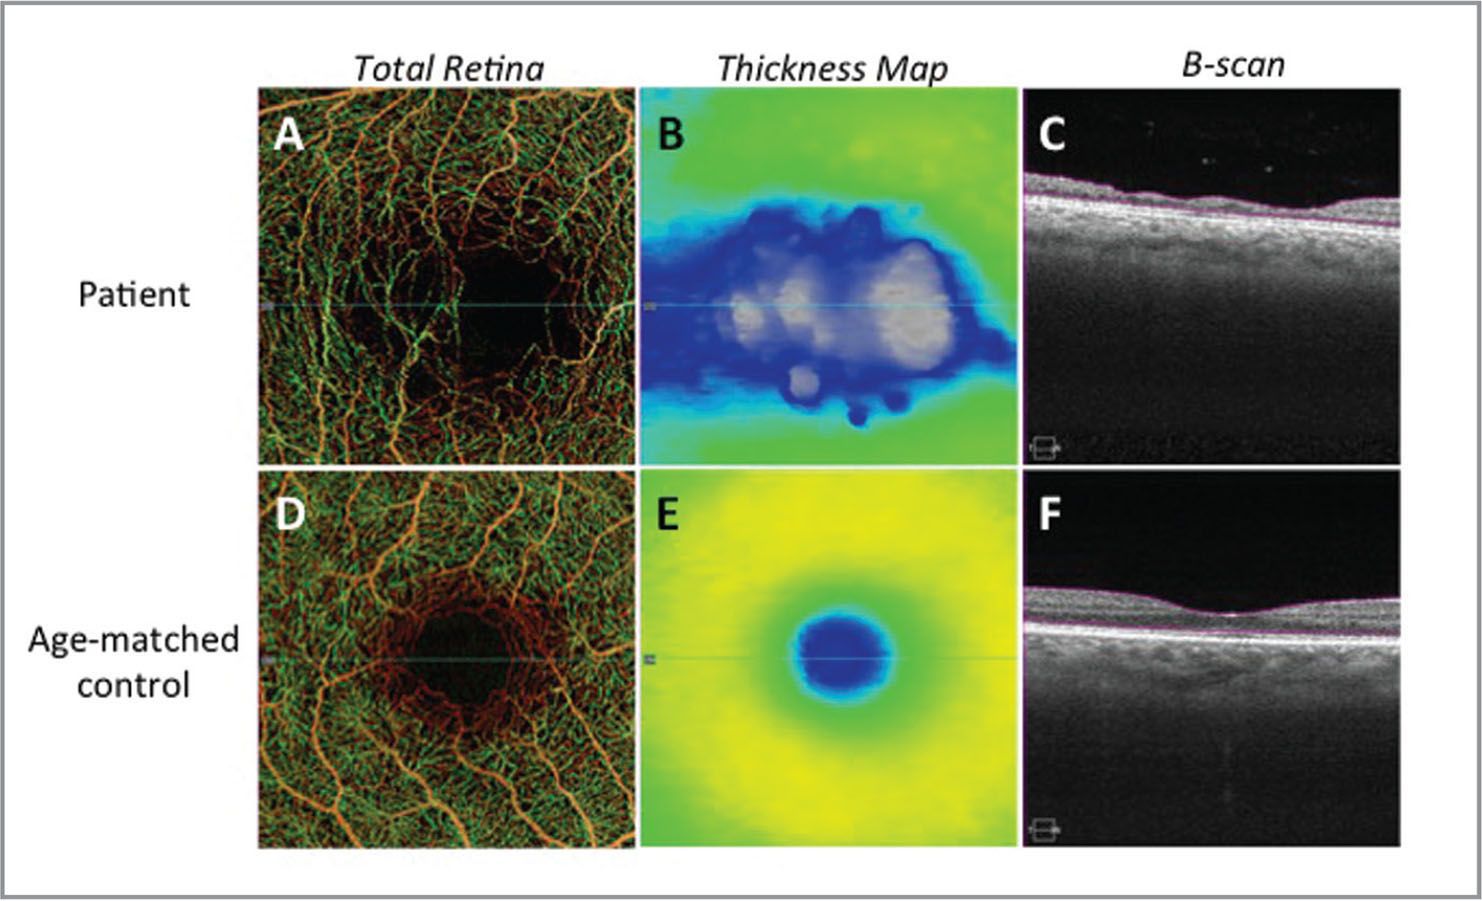 Swept-source optical coherence tomography angiography of the right eye. En face images of (A) total retinal vasculature flow, (B) total retinal thickness map, and (C) cross-sectional structural B-scans from this patient demonstrate a significant loss of the central macula microvasculature and retinal thinning. (D–F) Images from an age-matched control are provided for reference; en face images of (D) total retinal vasculature flow, (E) total retinal thickness map, and (F) cross-sectional structural B-scans of the central macula.